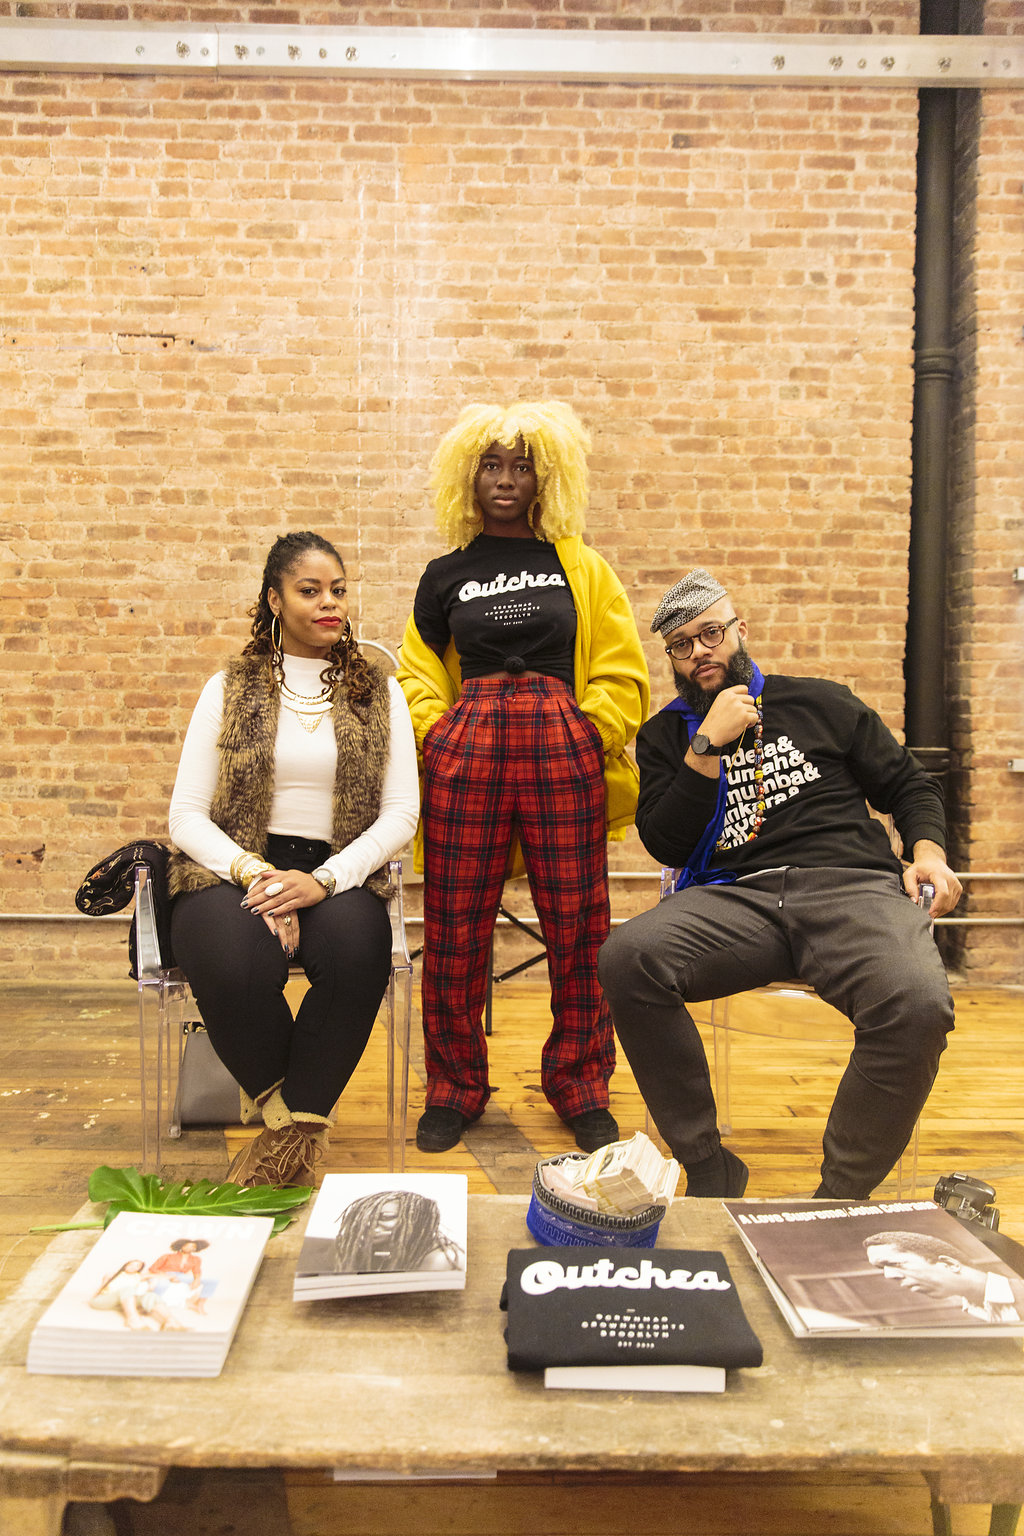 The Black Owned Market Presents: The Holiday Pop-Up Shop + One Year Anniversary - December 17th, 2017 - Photography Coverage Provided By: KOLIN MENDEZ PHOTOGRAPHY | © kmendezPHOTOS - 2017 - www.kolinmendez.com